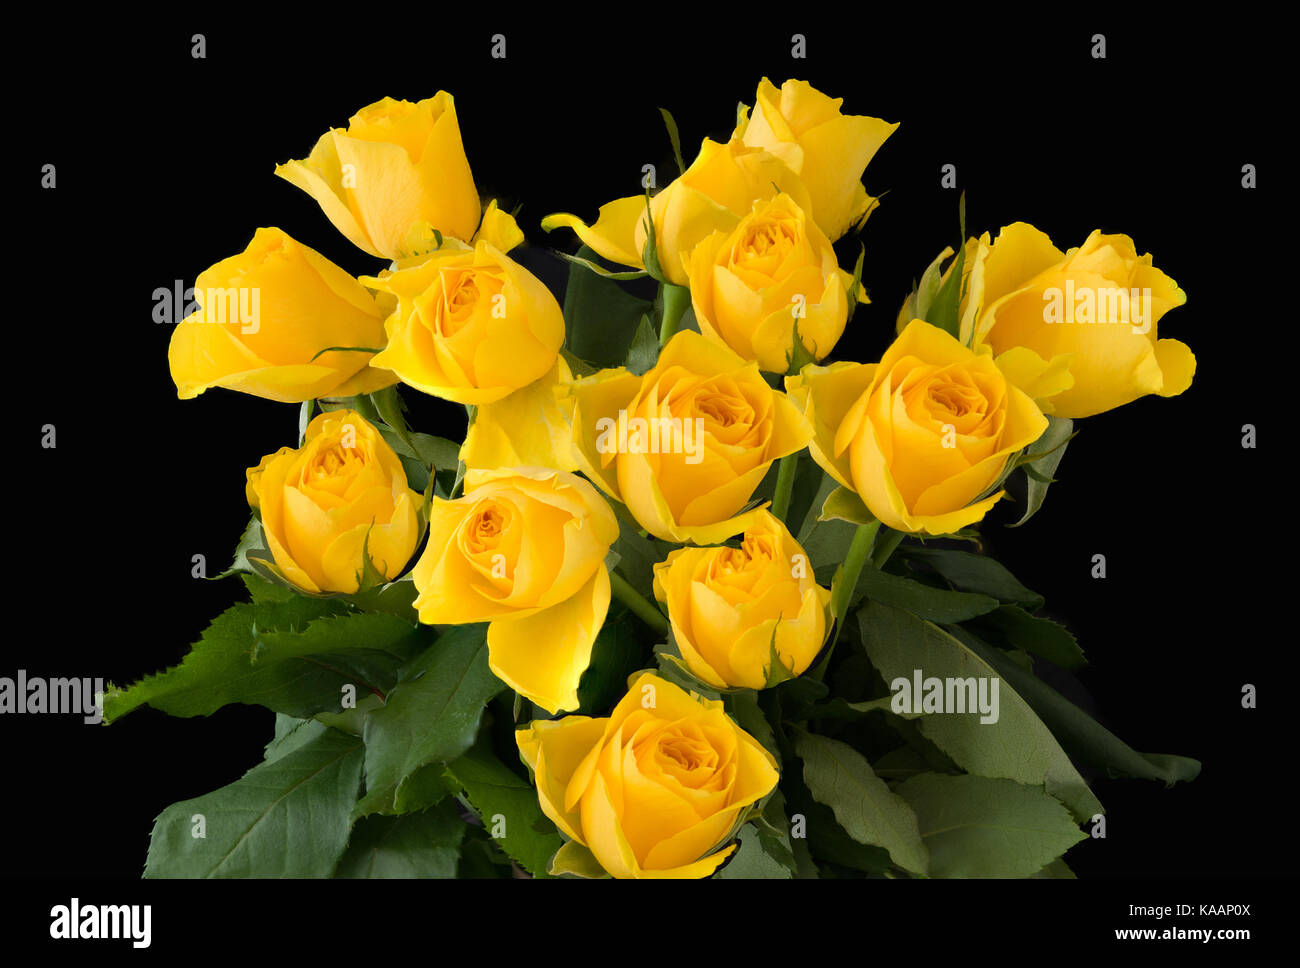 Beautiful yellow rose gardens - A Beautiful Bunch Of Yellow Roses Isolated On A Black Back Ground Stock Image